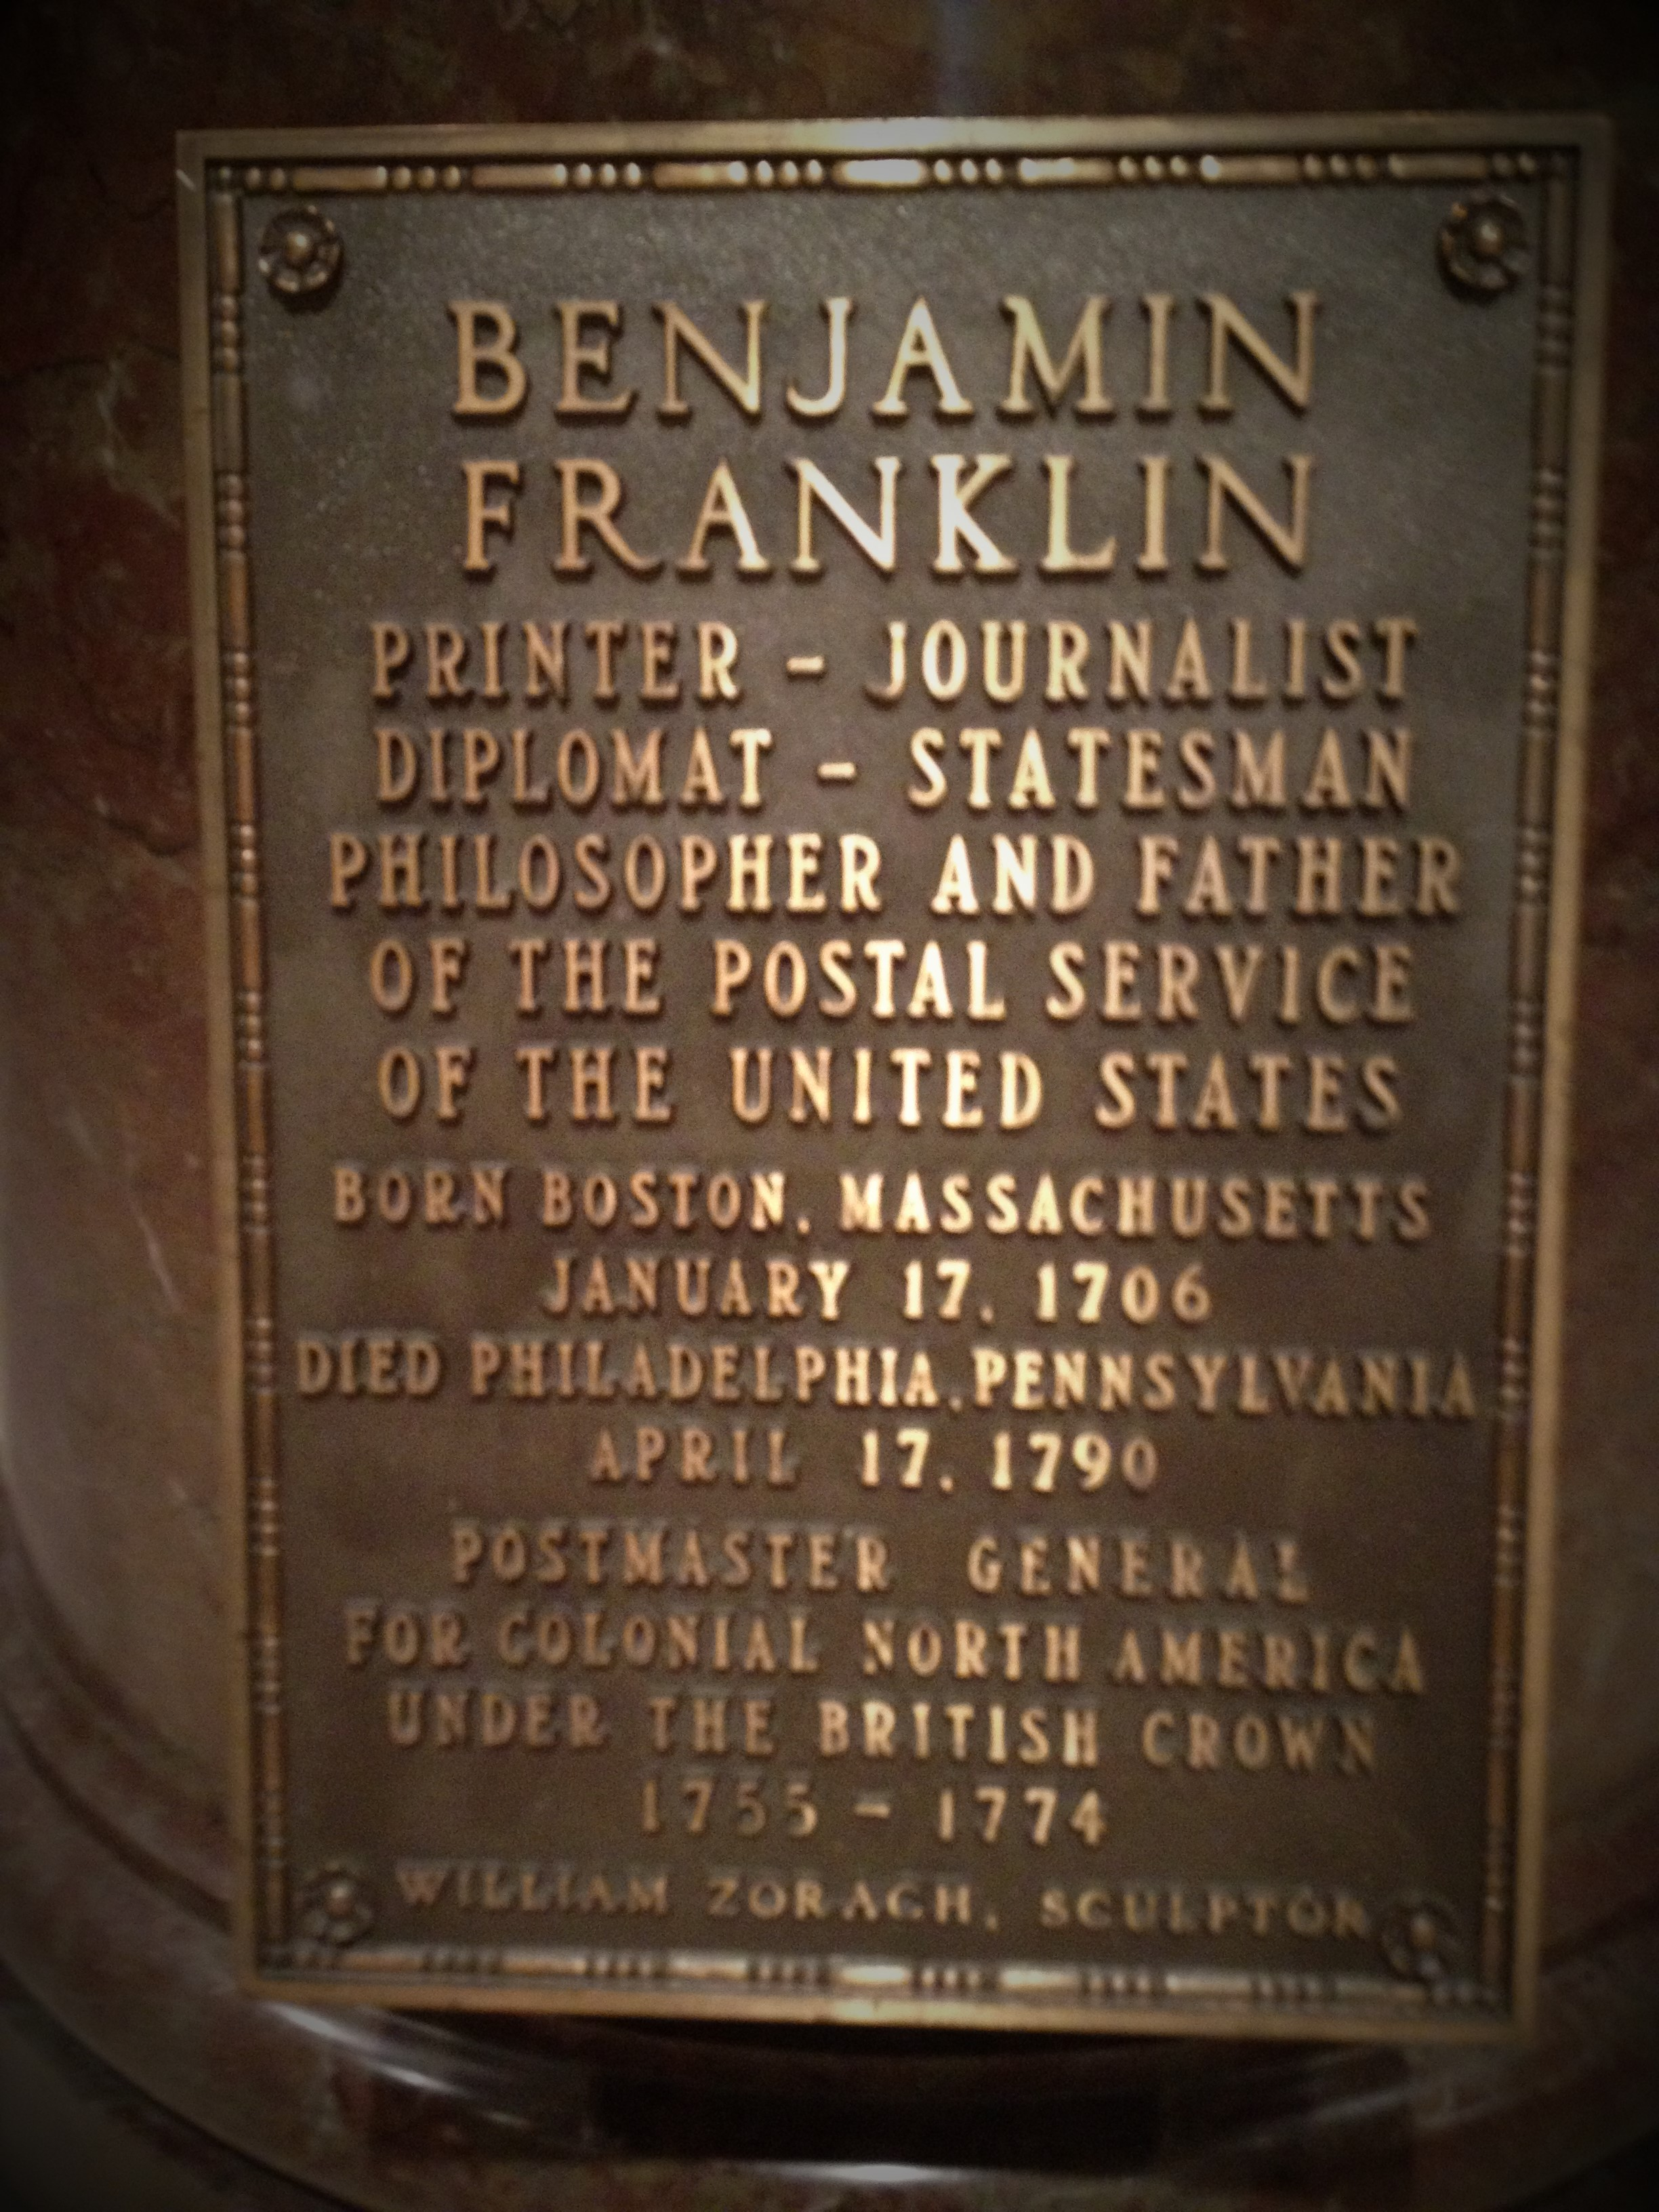 The inscription of the statue of Benjamin Franklin at the National Postal Museum in Washington, D.C. identifies him as a printer, a journlist, a diplomat, a statesman, a philosopher, and the father of the United States Postal Service. Prior to the American Revolution, Franklin served as Postmaster General for Colonial North America under the British. Photo credit: L. Tripoli